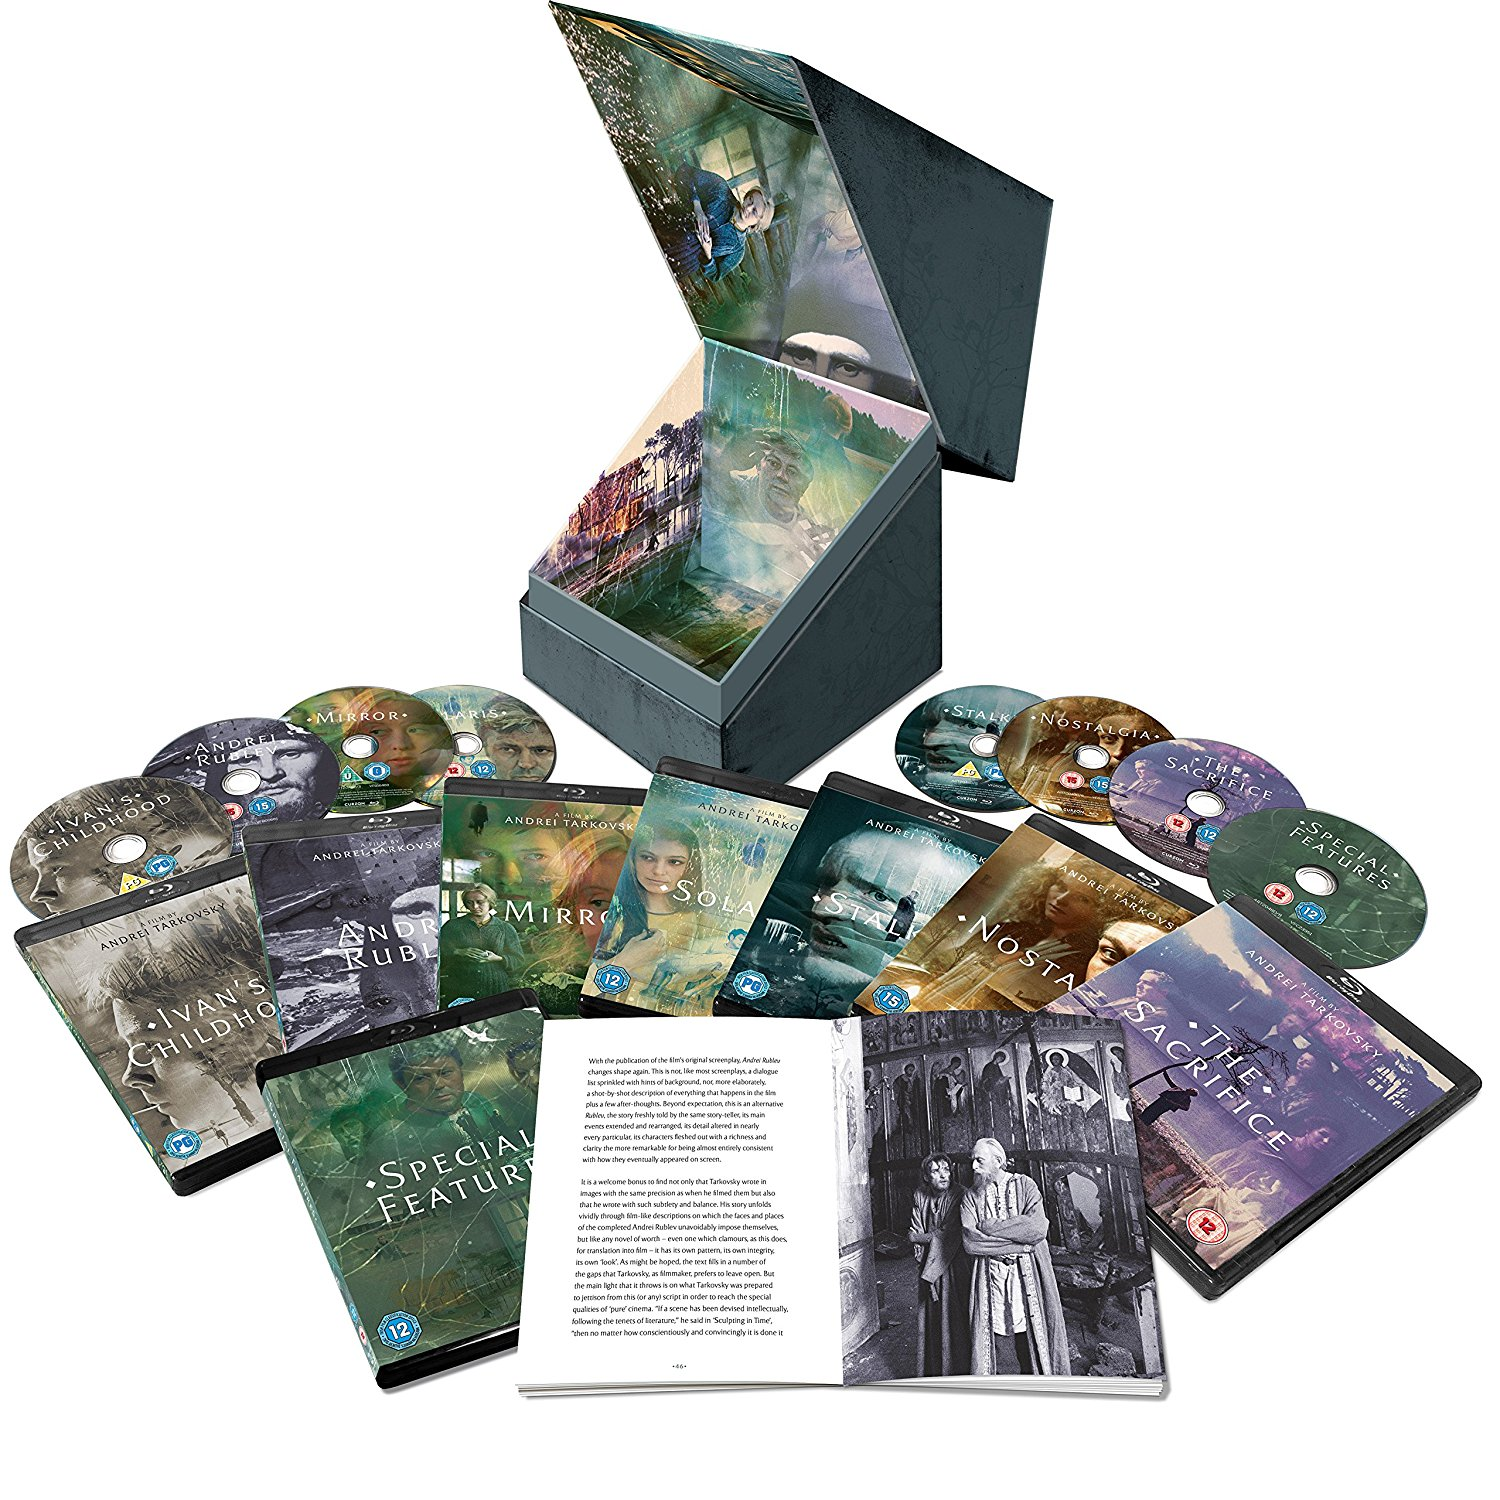 Buy Andrei Tarkovsky: Sculpting Time The Deluxe Collection (BLU-RAY)